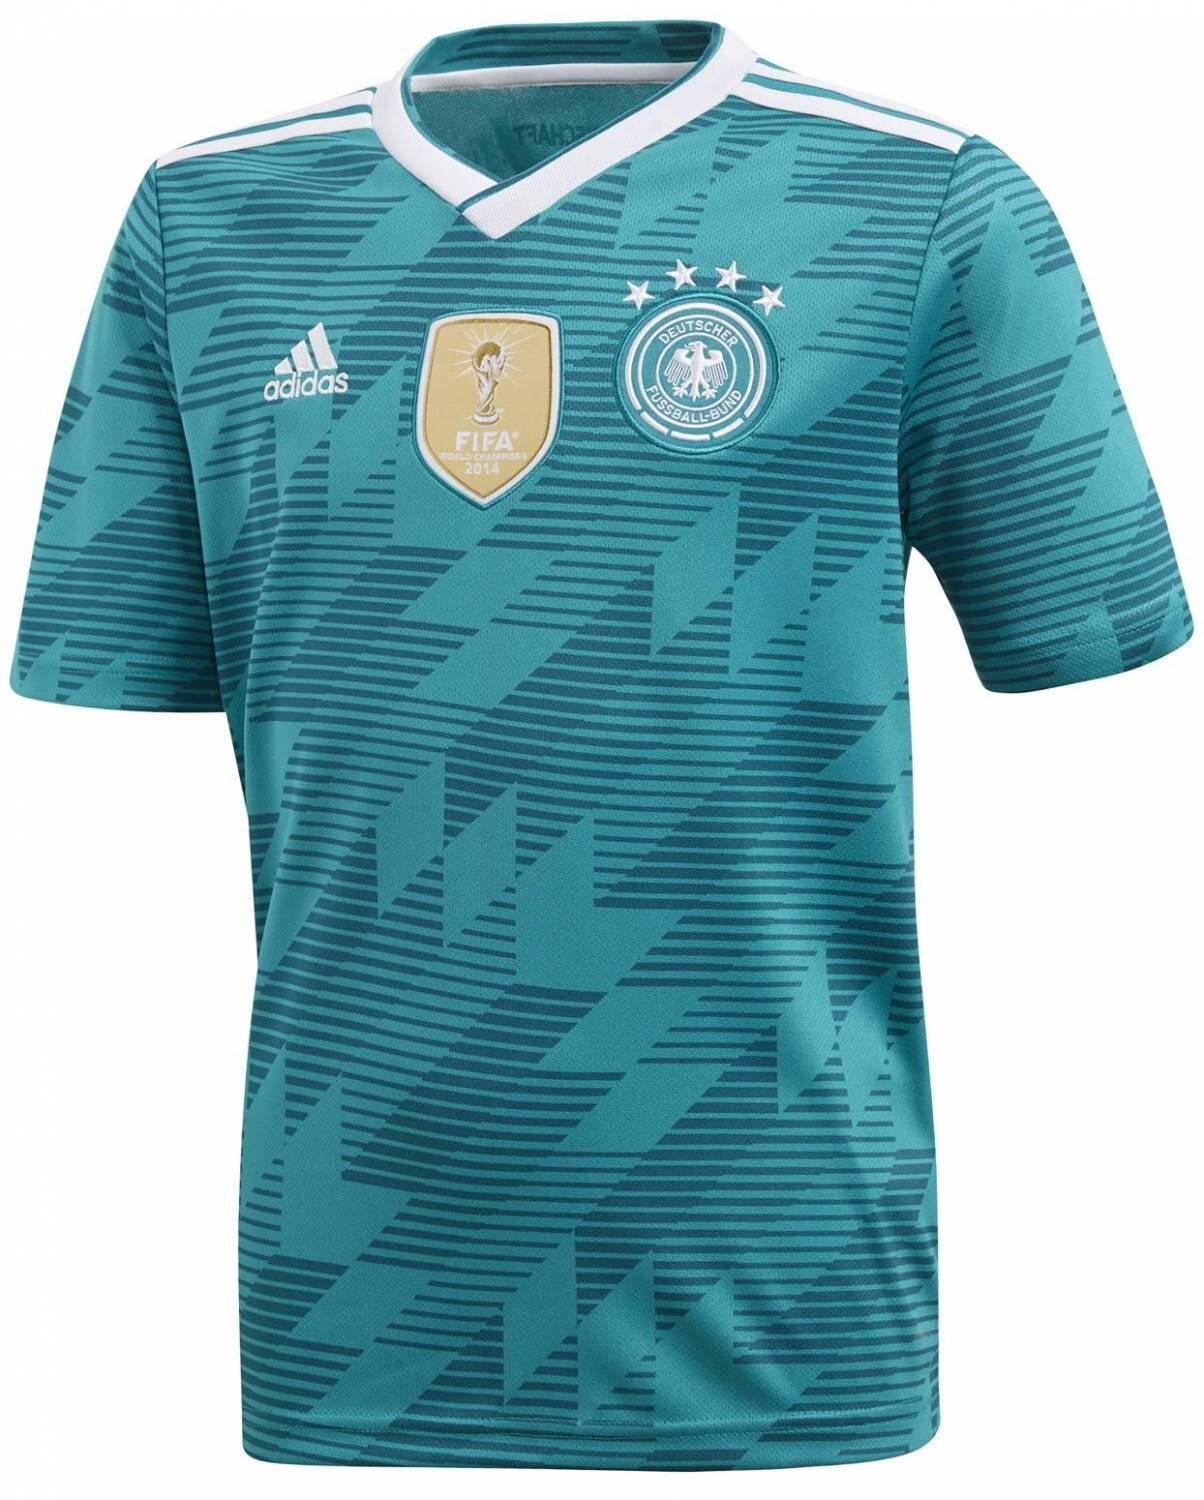 adidas DFB Away Jersey Kinder